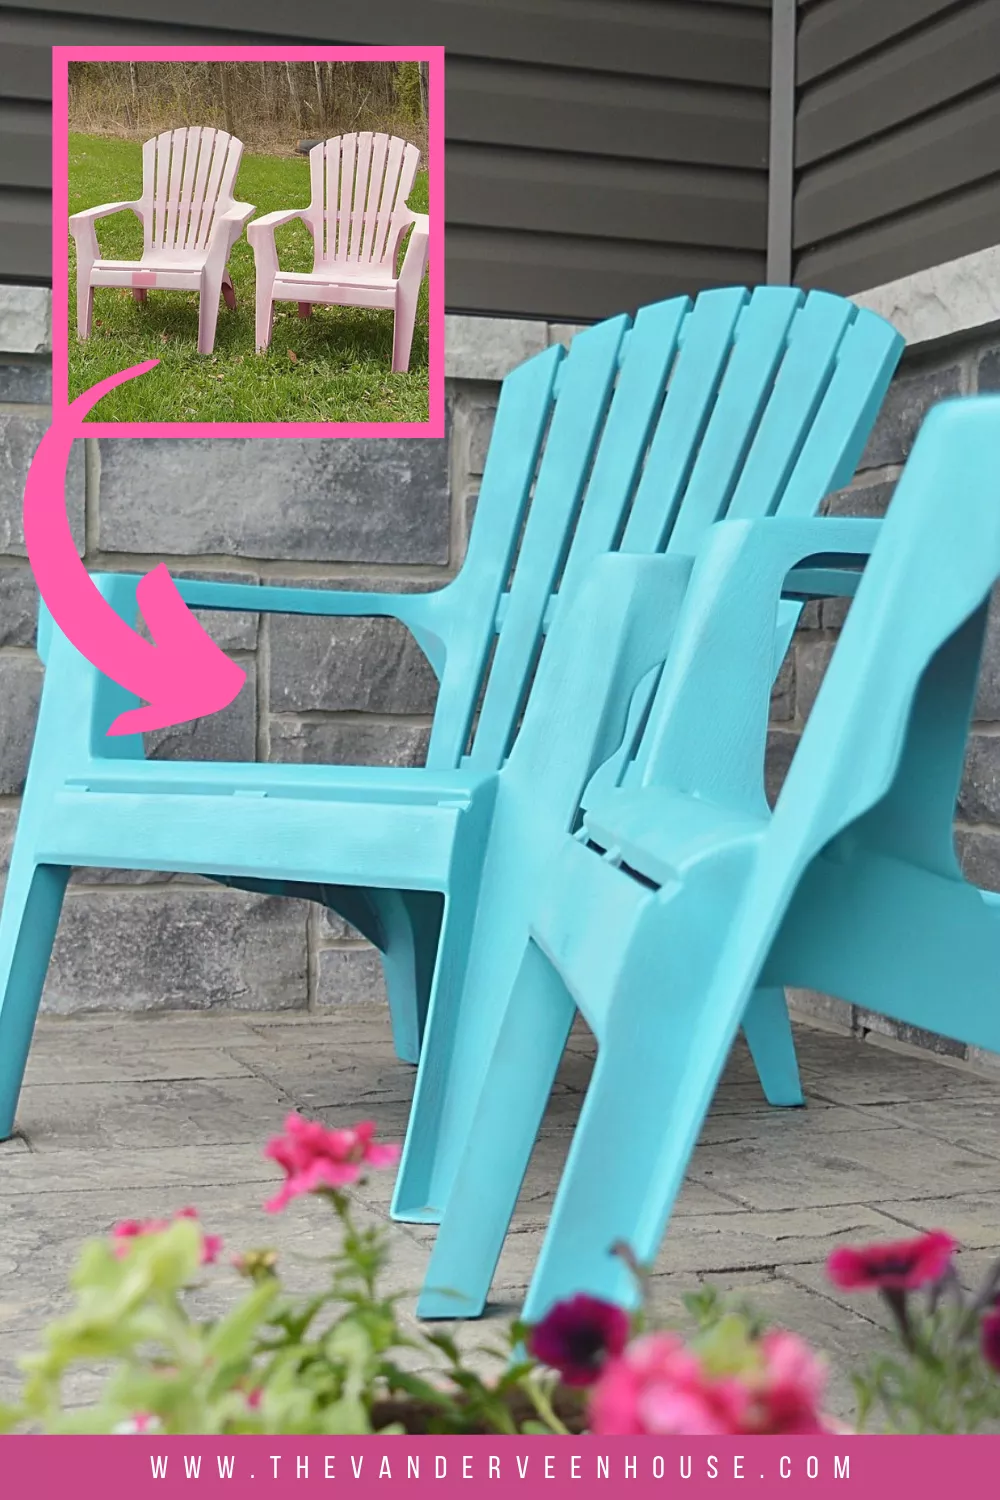 How To Spray Paint Plastic Chairs Painting Plastic Chairs Cheap